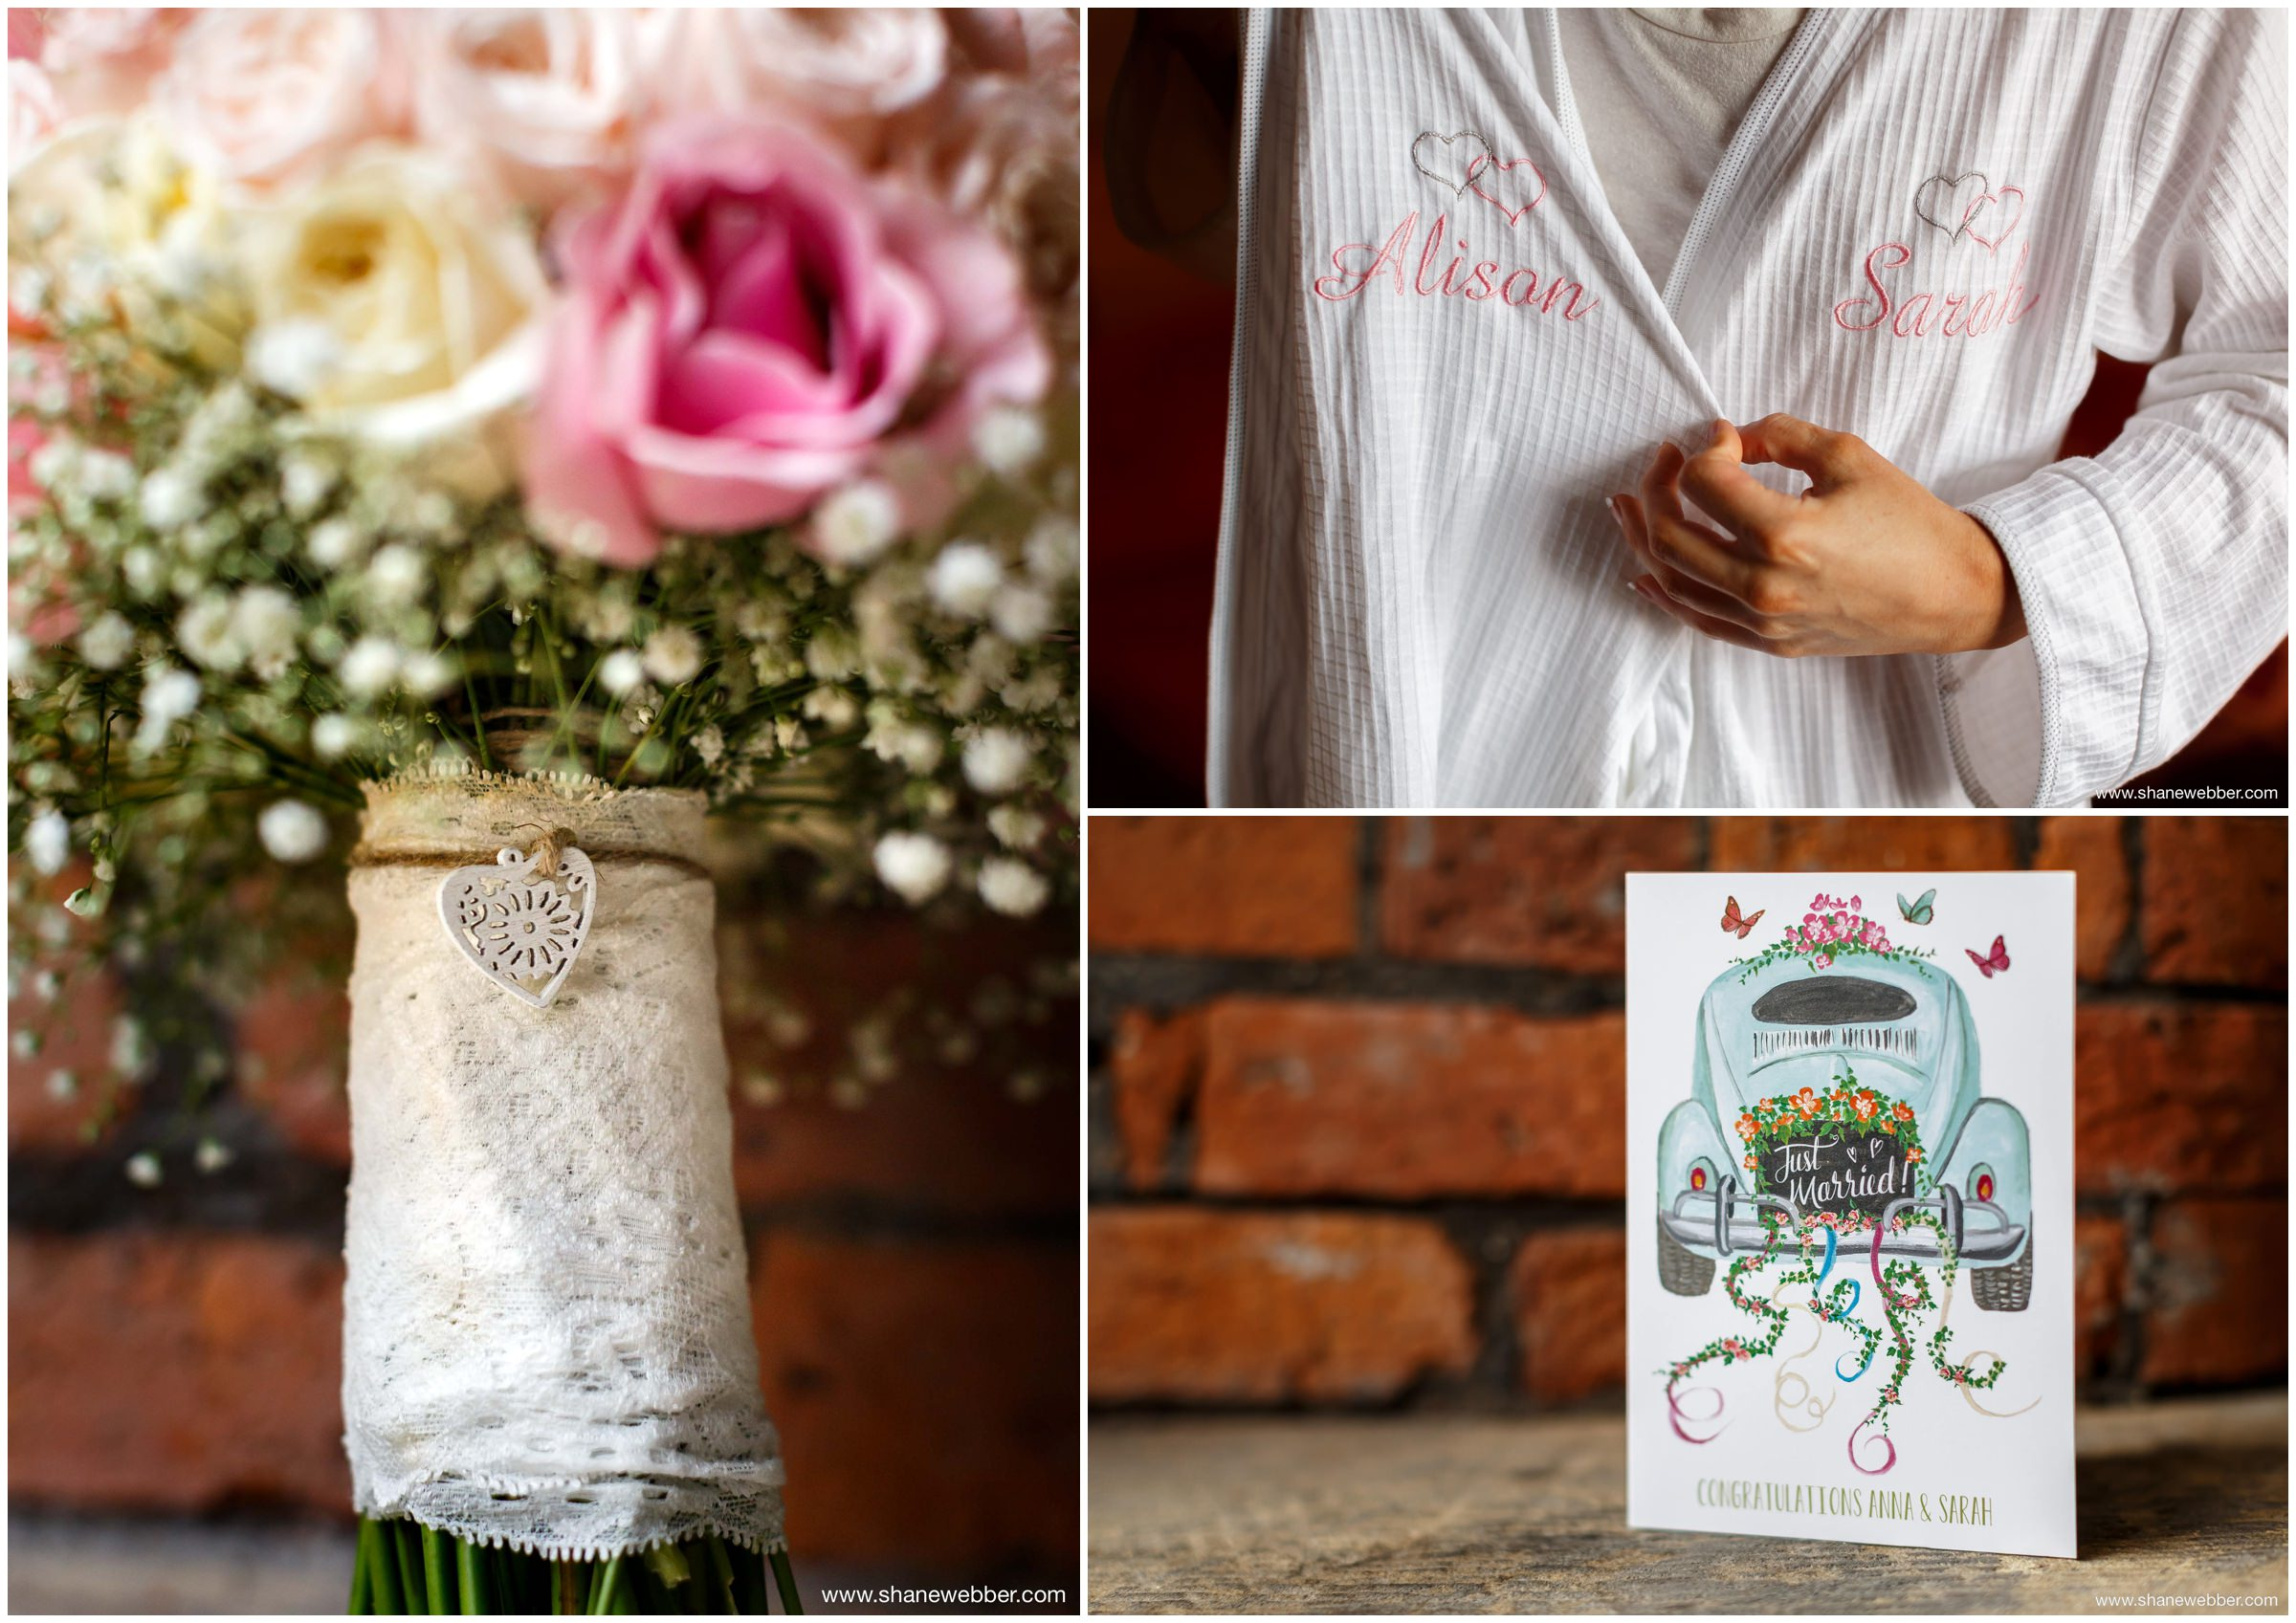 Cute wedding details for bridal preparation